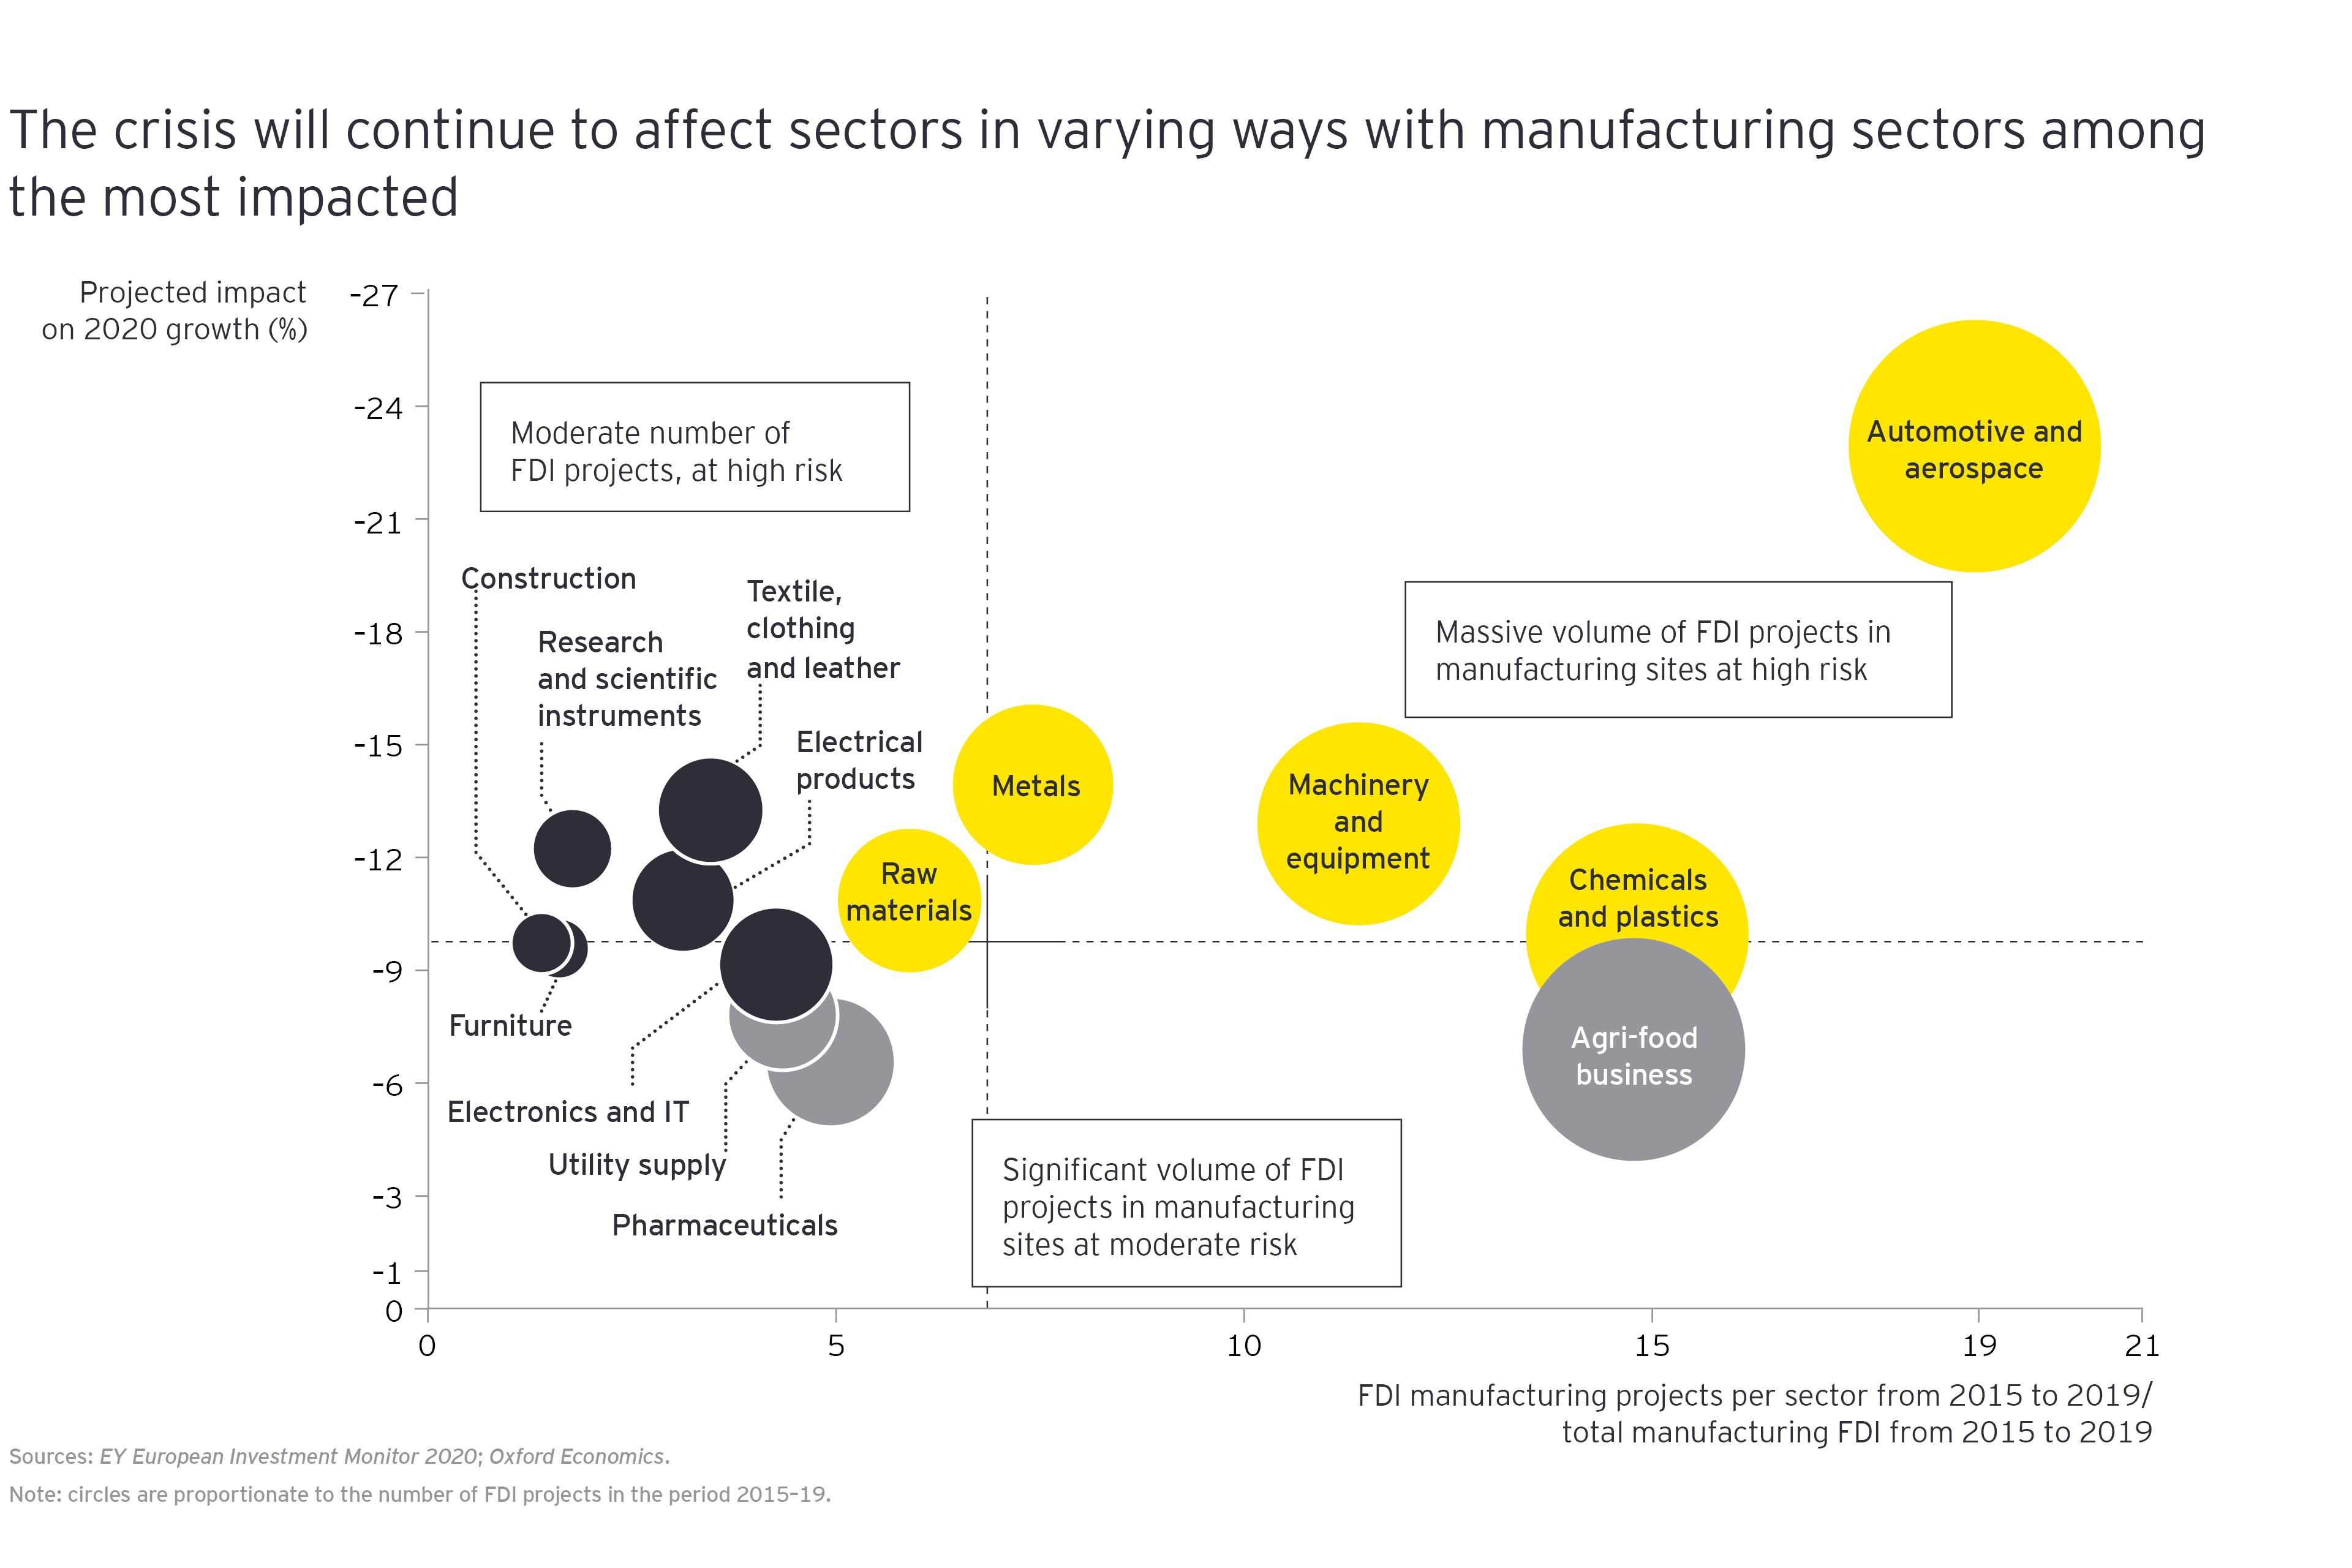 The crisis will continue to effect sectors in varying way